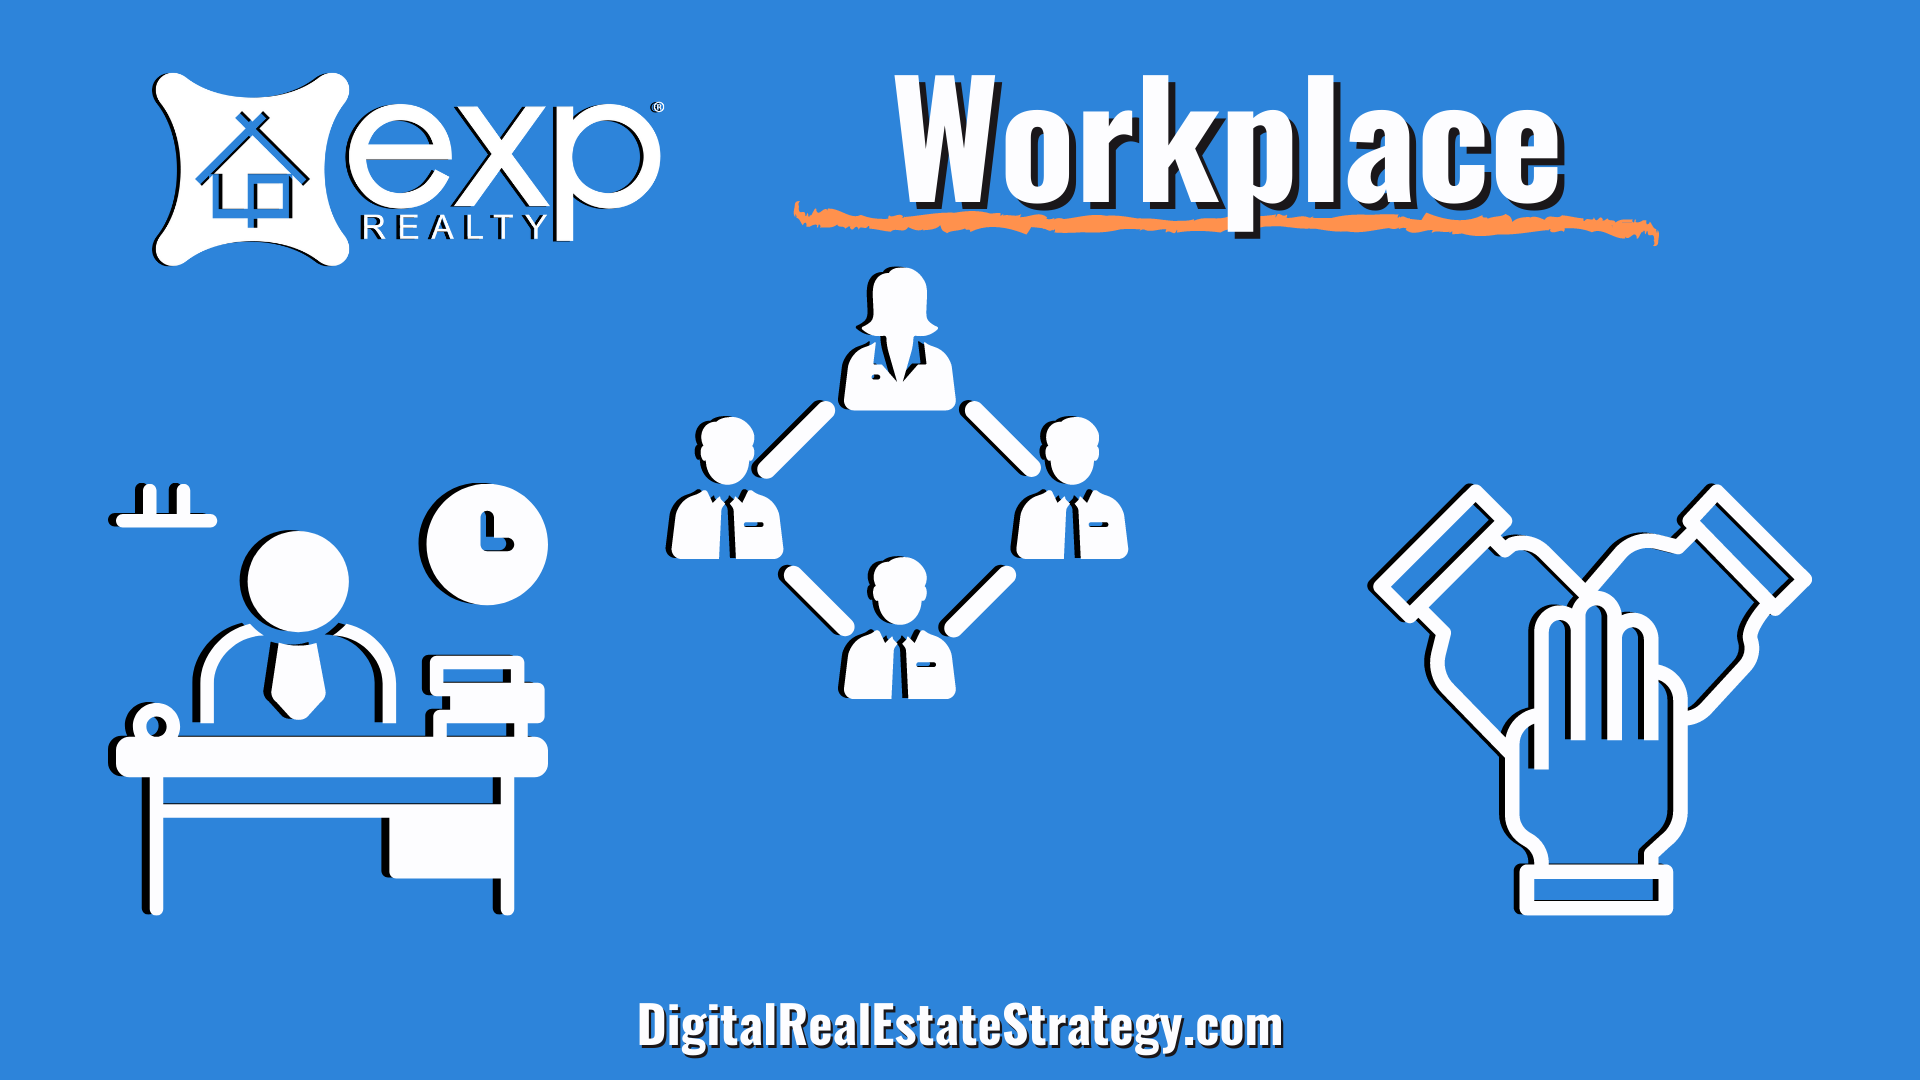 eXp Realty Review - Workplace By Facebook - Jerome Lewis - eXp Realty Philadelphia - Digital Real Estate Strategy